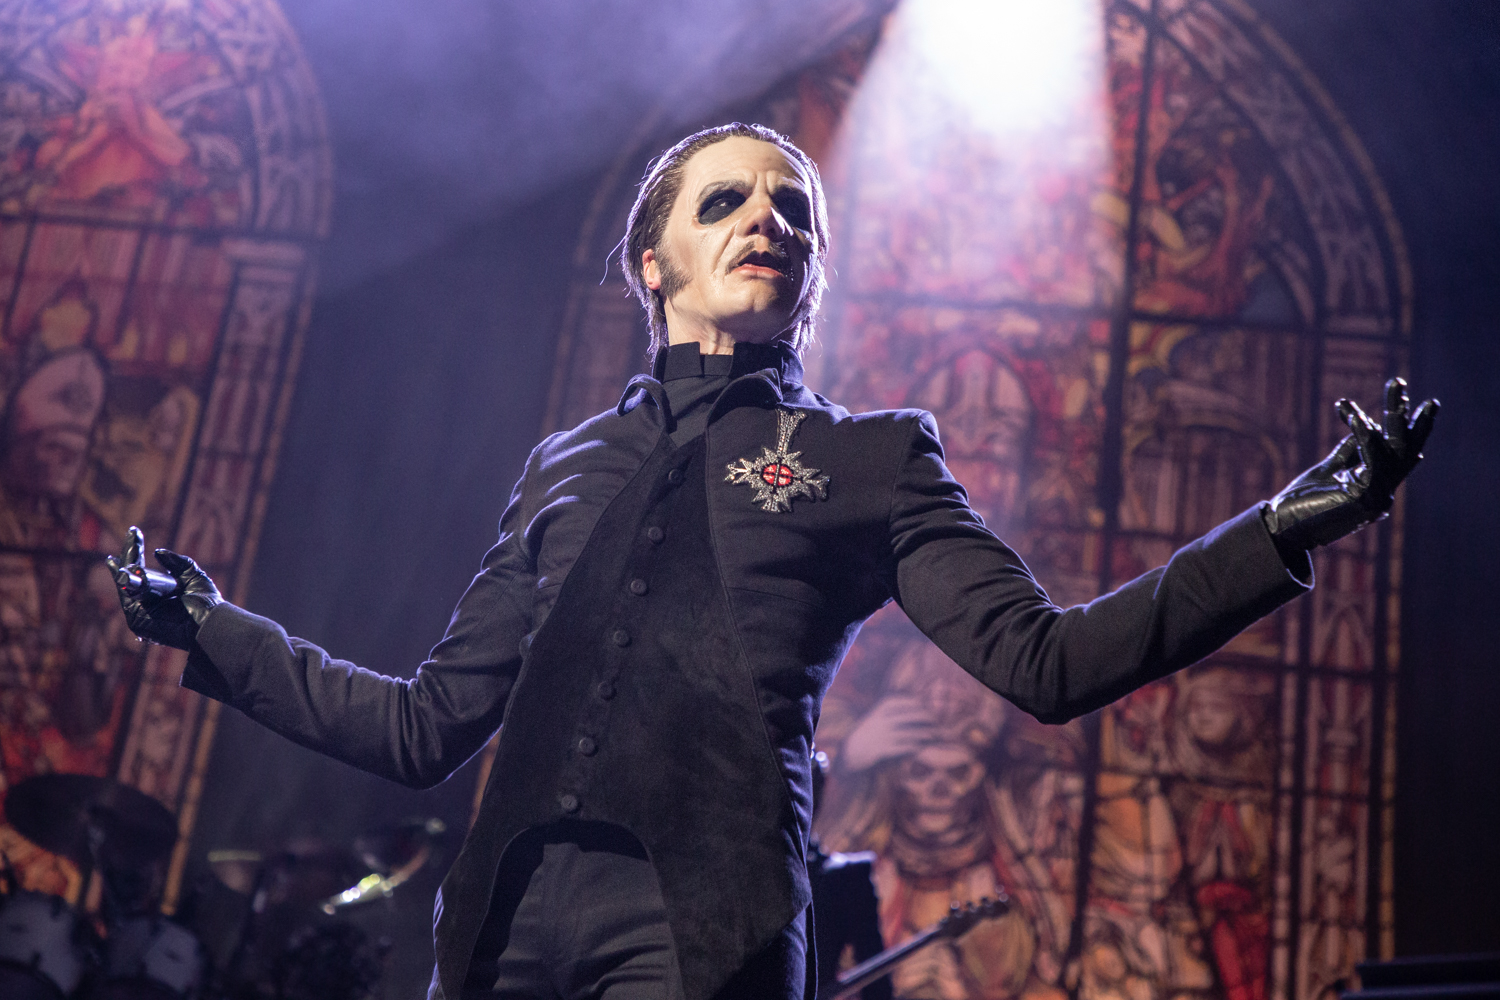 Ghost Barclays Center 2018 1 Live Review: Ghost Turn Brooklyns Barclays Center Into a House of Worship (12/15)